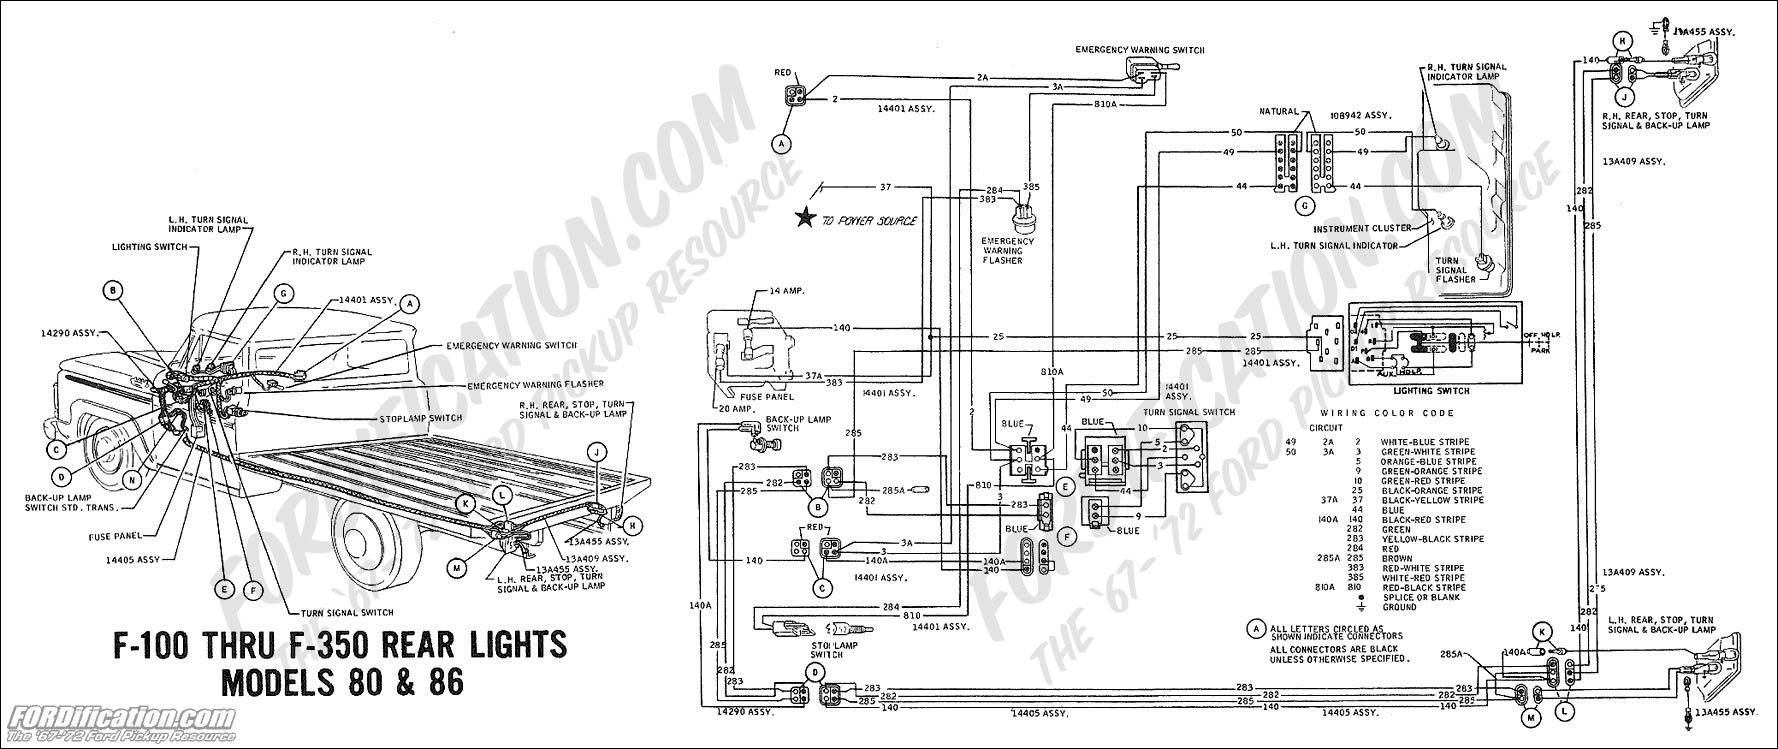 wiring_69rearlights mdls80 86 1994 f700 wiring diagram on 1994 download wirning diagrams Ford F-150 Wire Schematics at gsmportal.co